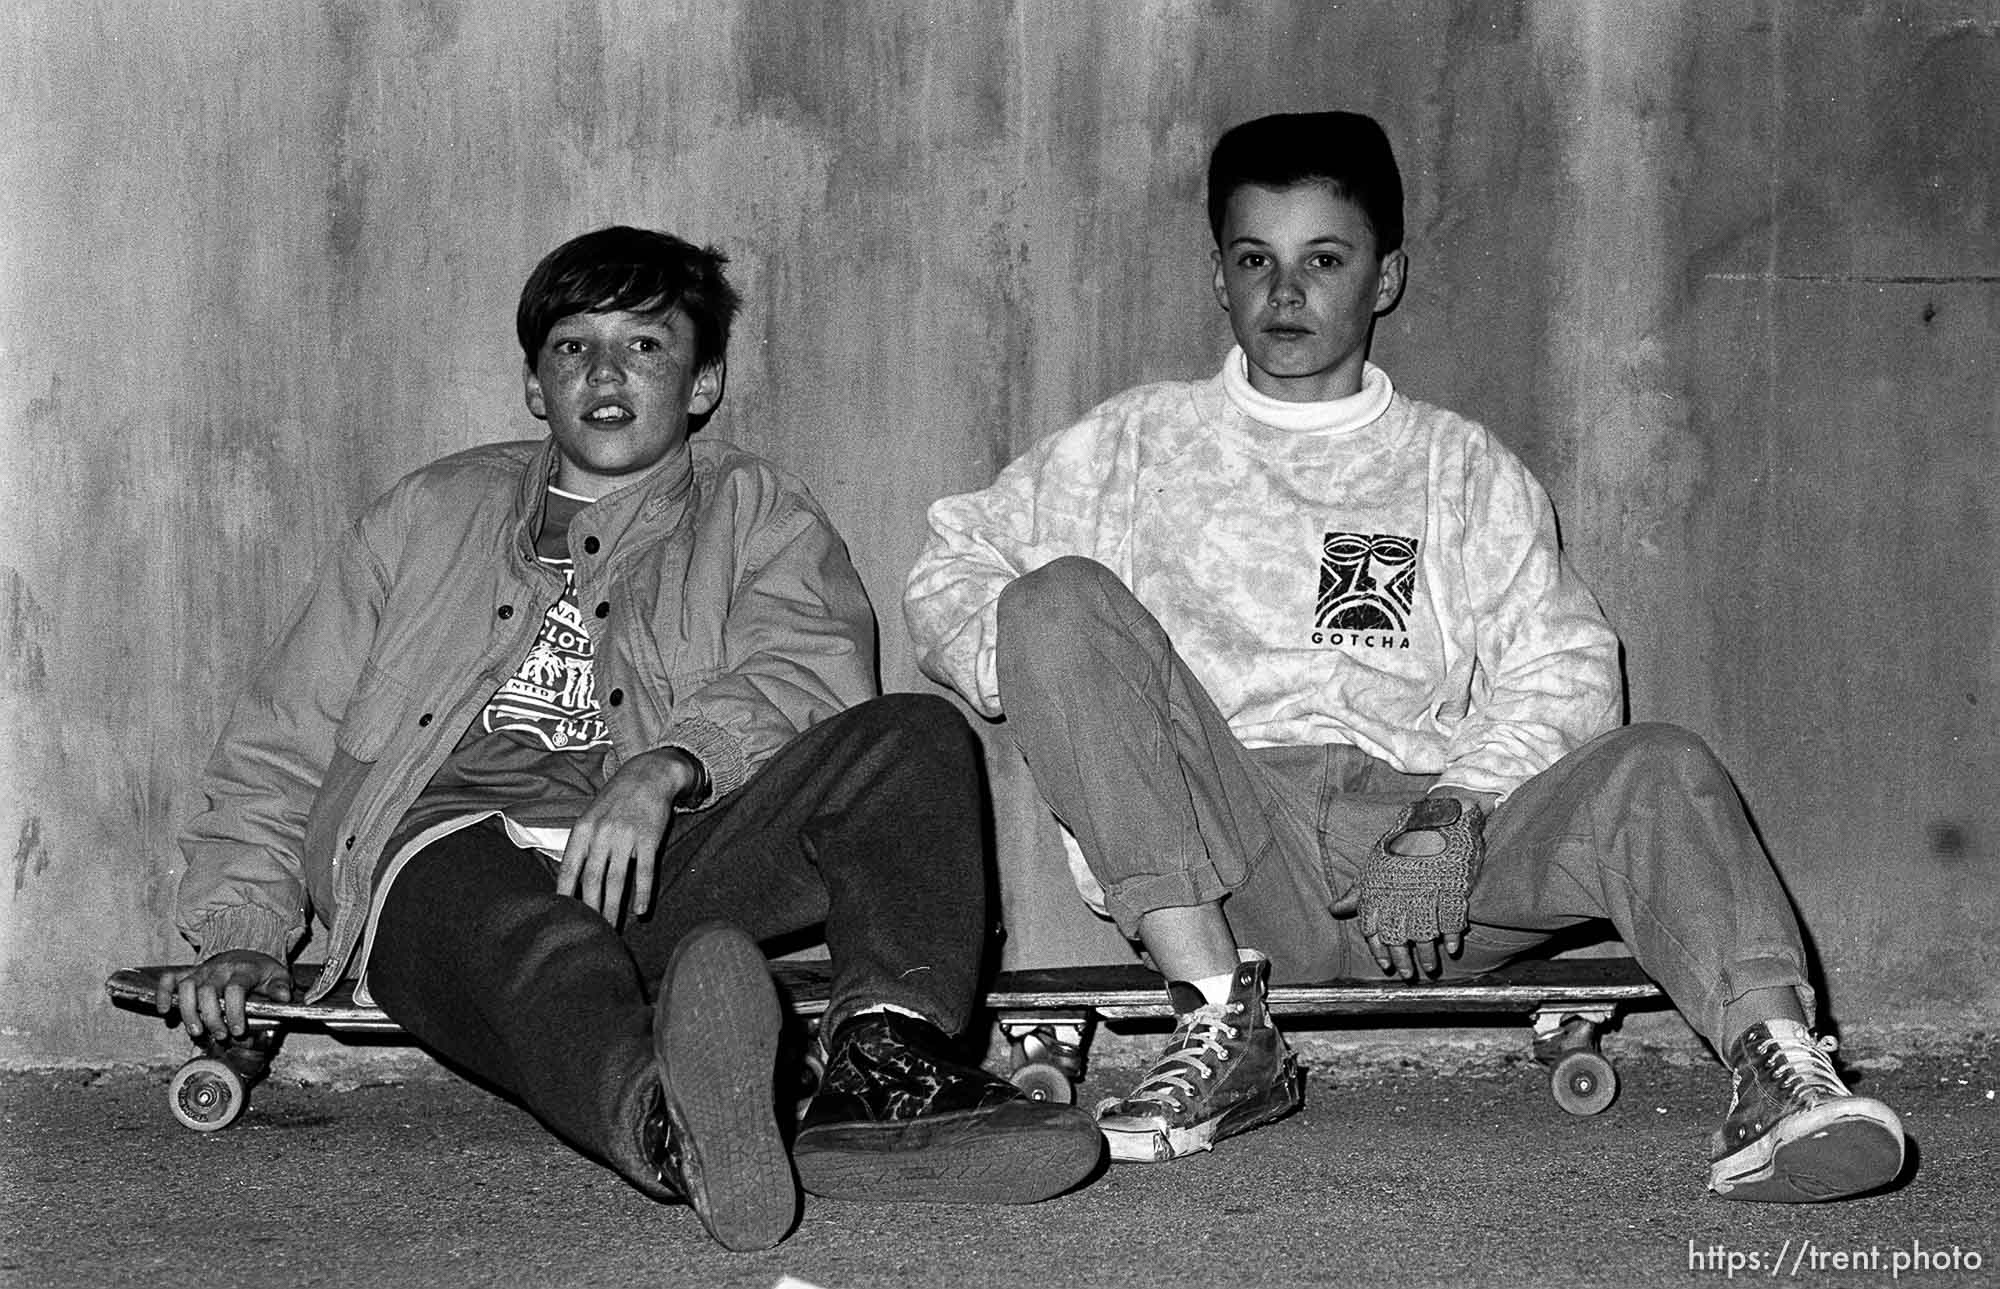 Two skaters, february 1988. p